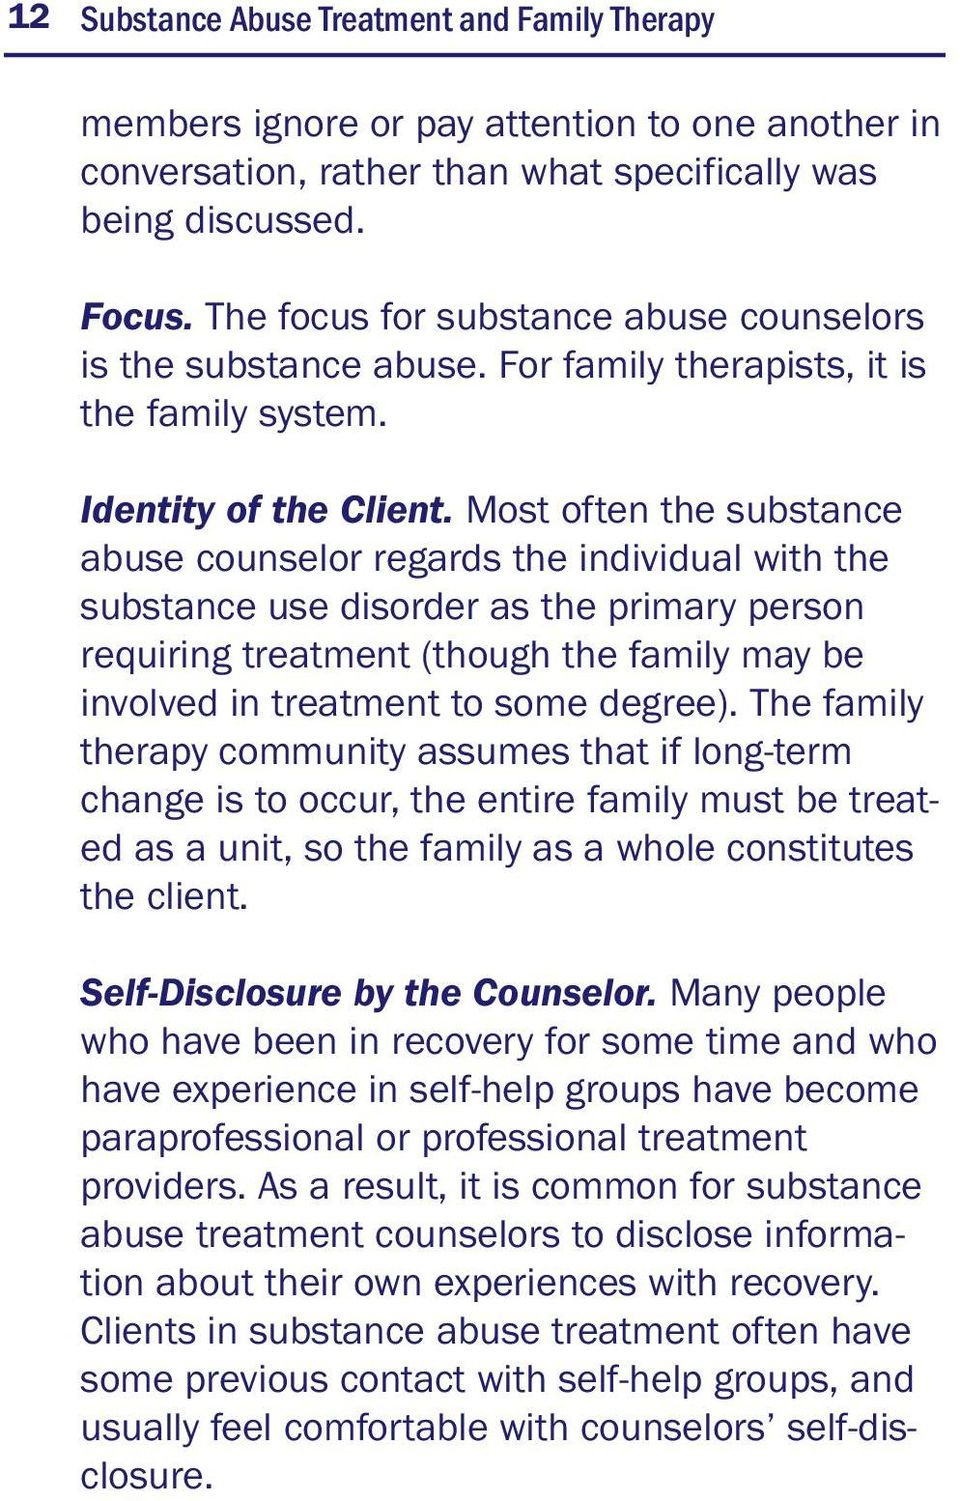 Most often the substance abuse counselor regards the individual with the substance use disorder as the primary person requiring treatment (though the family may be involved in treatment to some